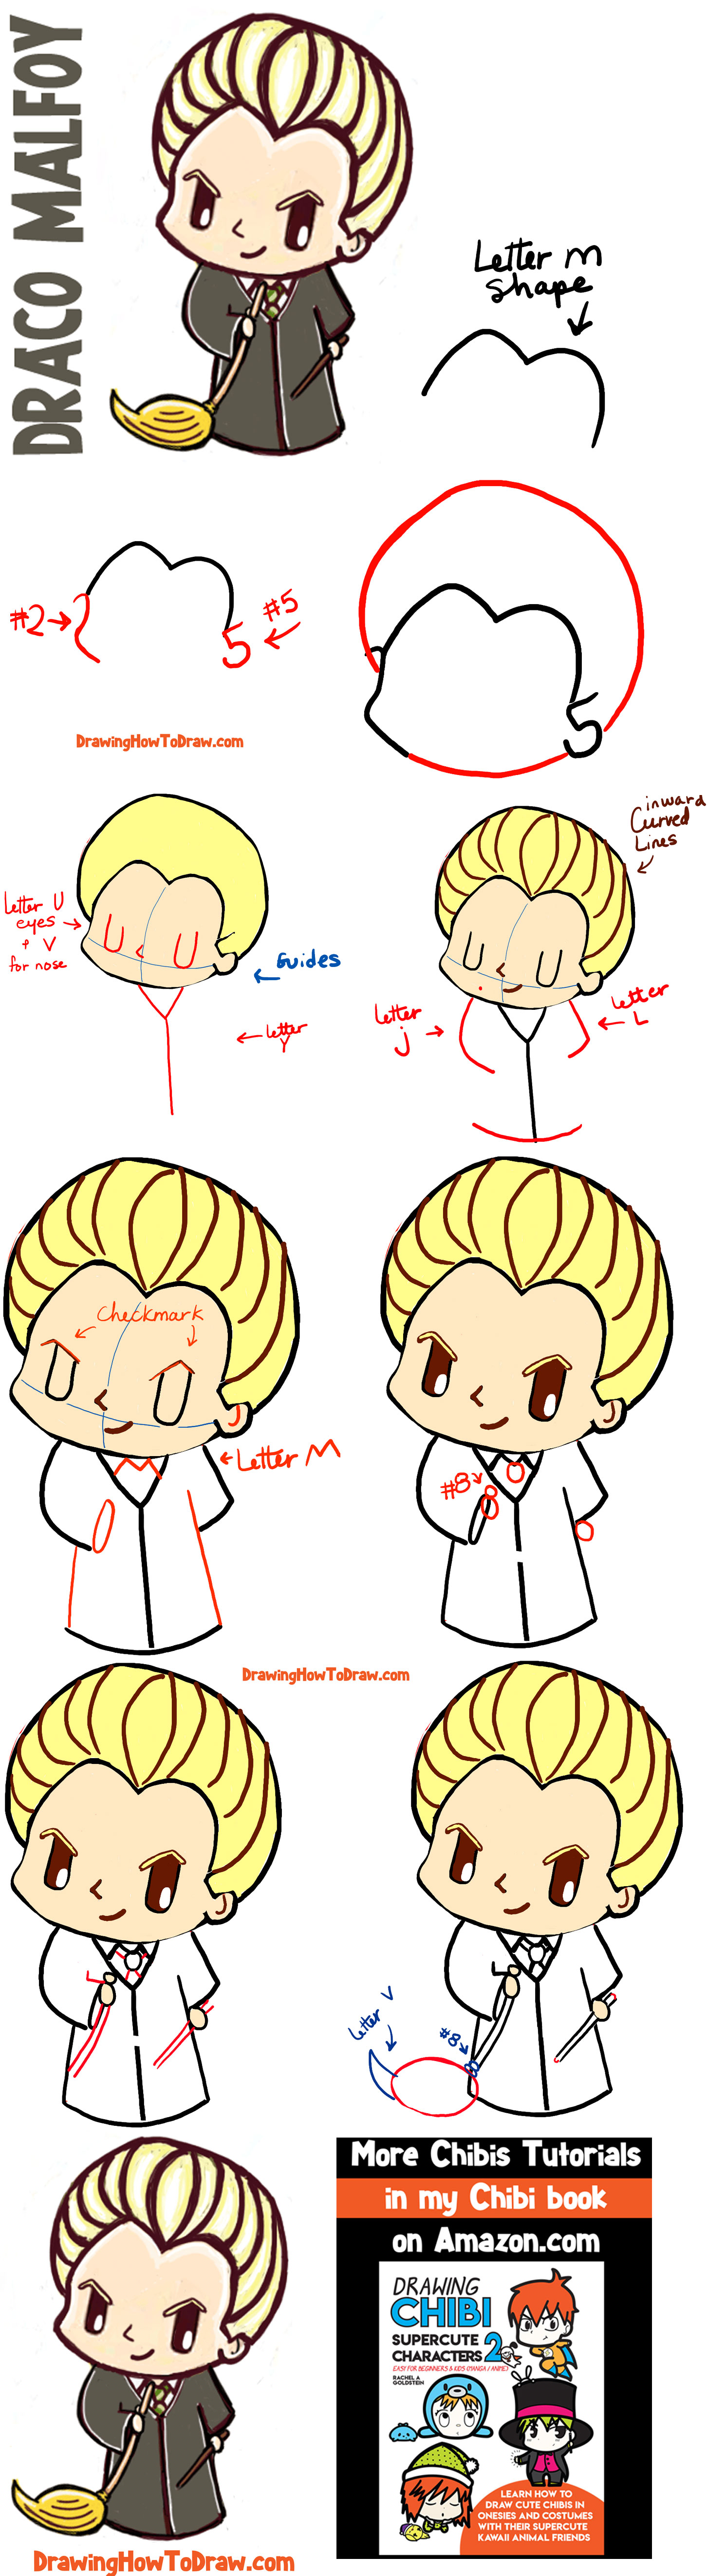 How To Draw Cute Chibi Draco Malfoy From Harry Potter With Easy